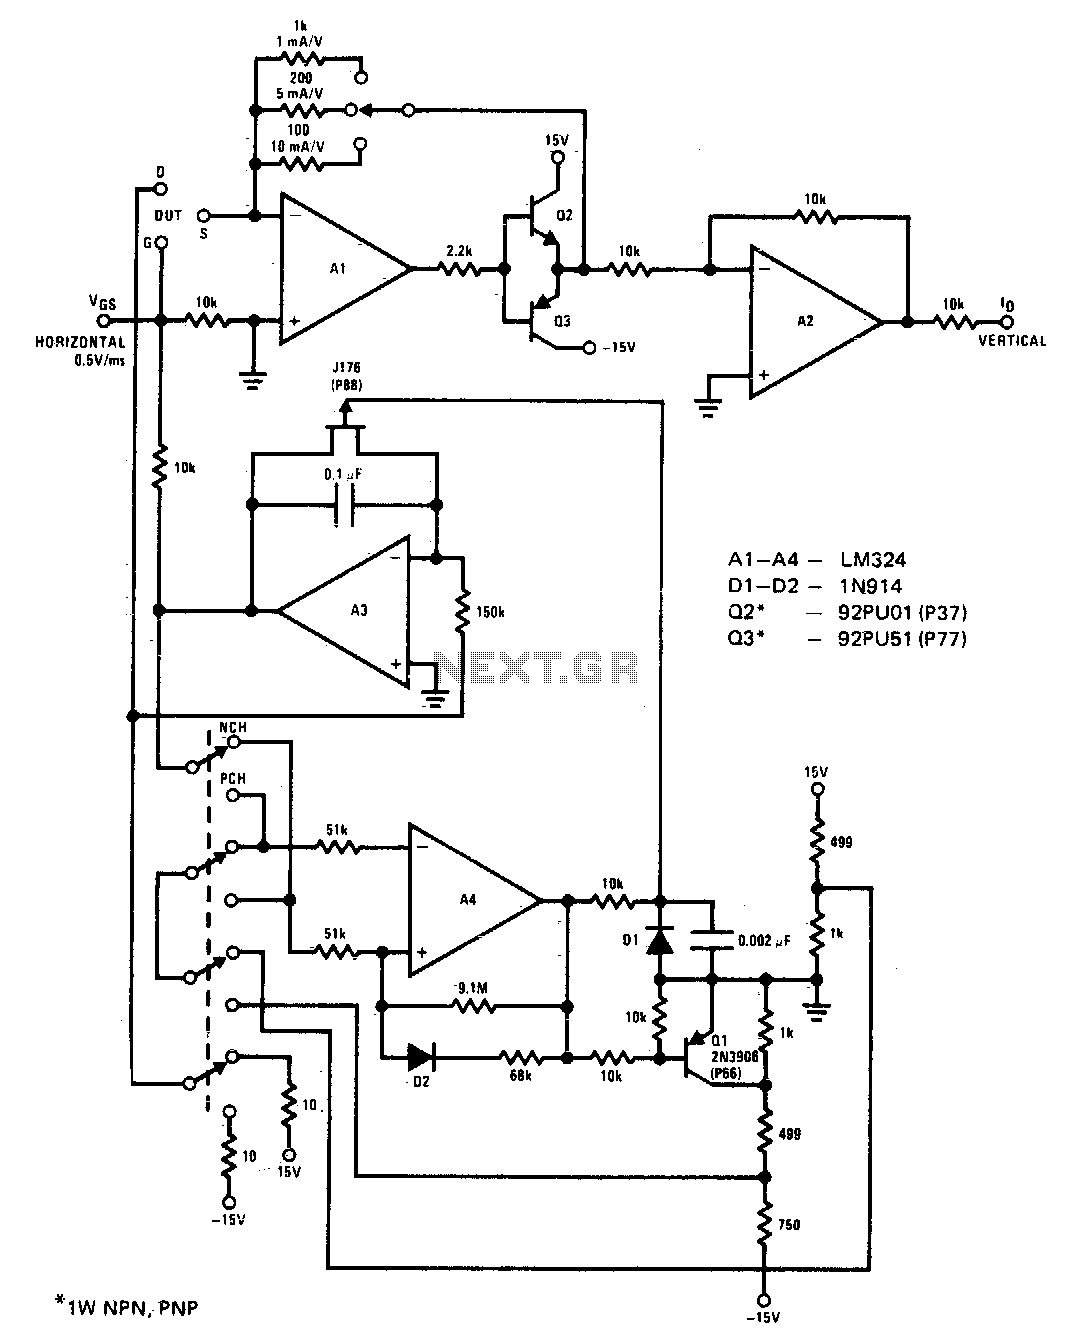 test capacitors diodes rectifiers on powersupply using multimeter